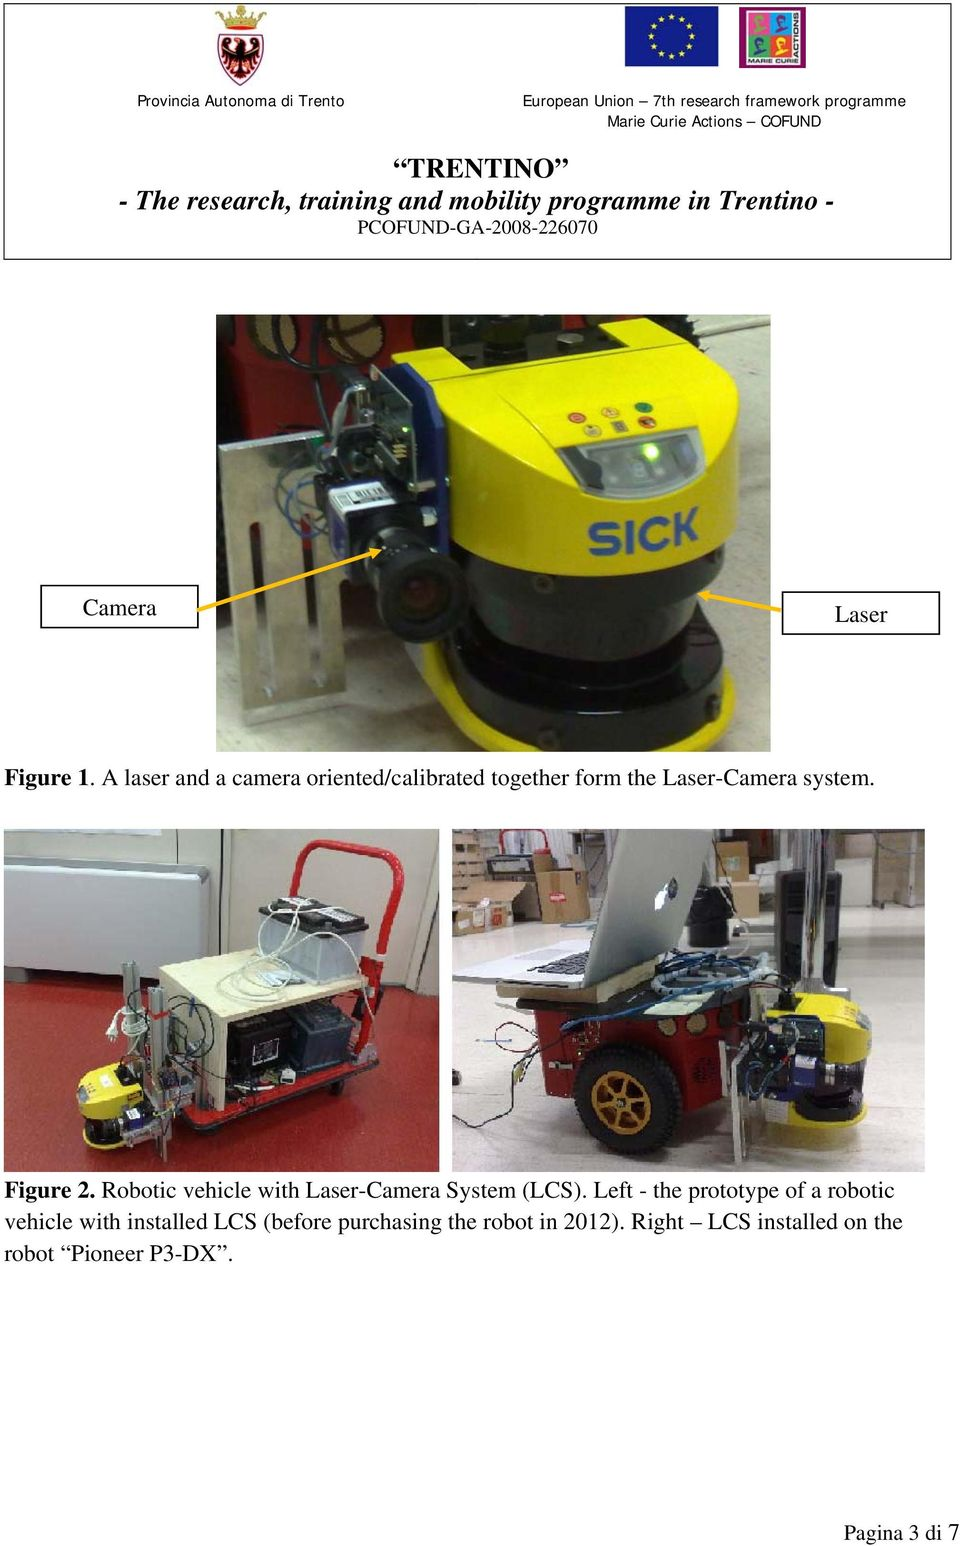 Figure 2. Robotic vehicle with Laser-Camera System (LCS).